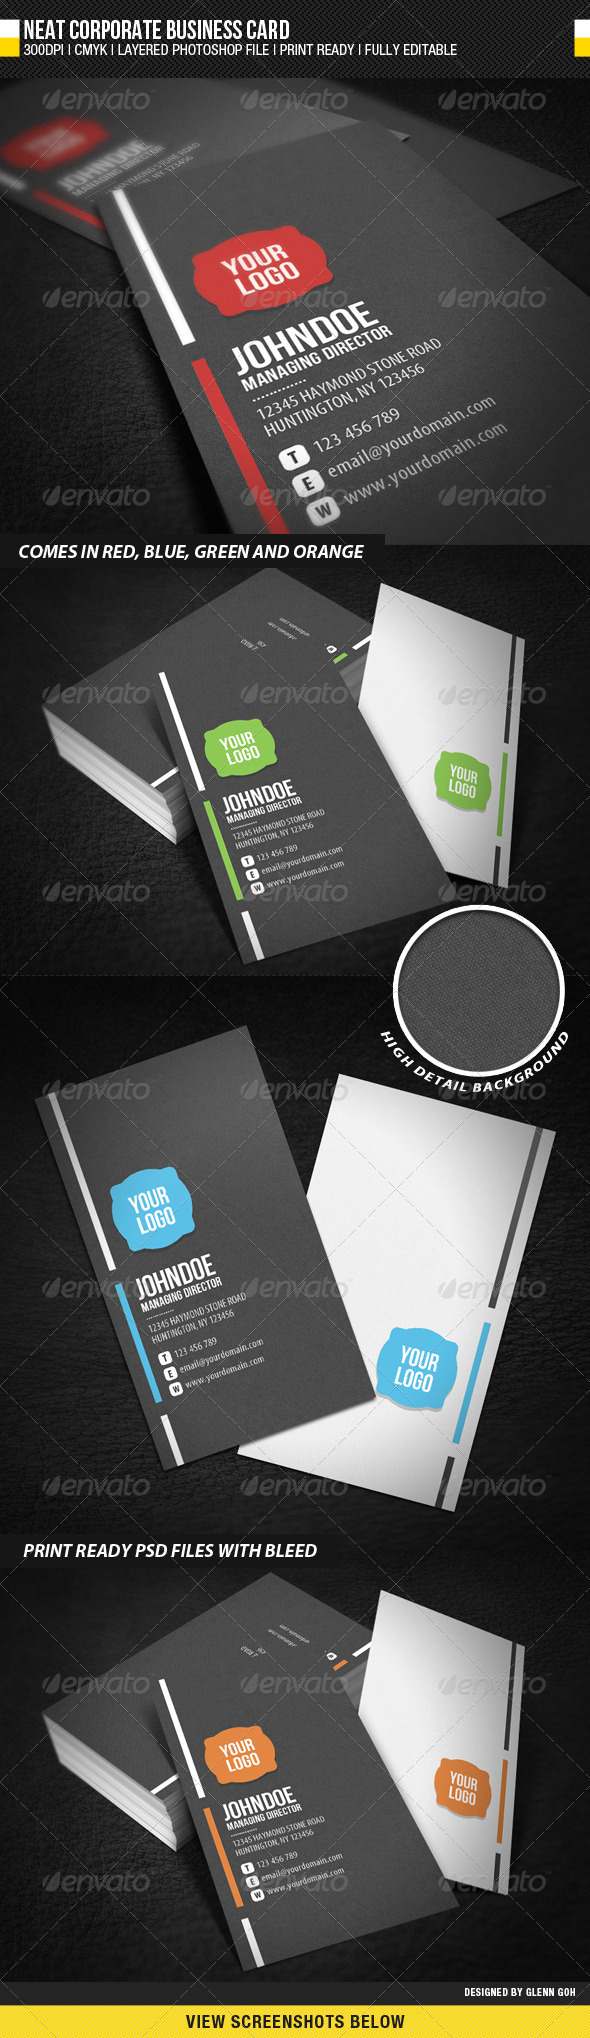 GraphicRiver Neat Corporate Business Card 1492534